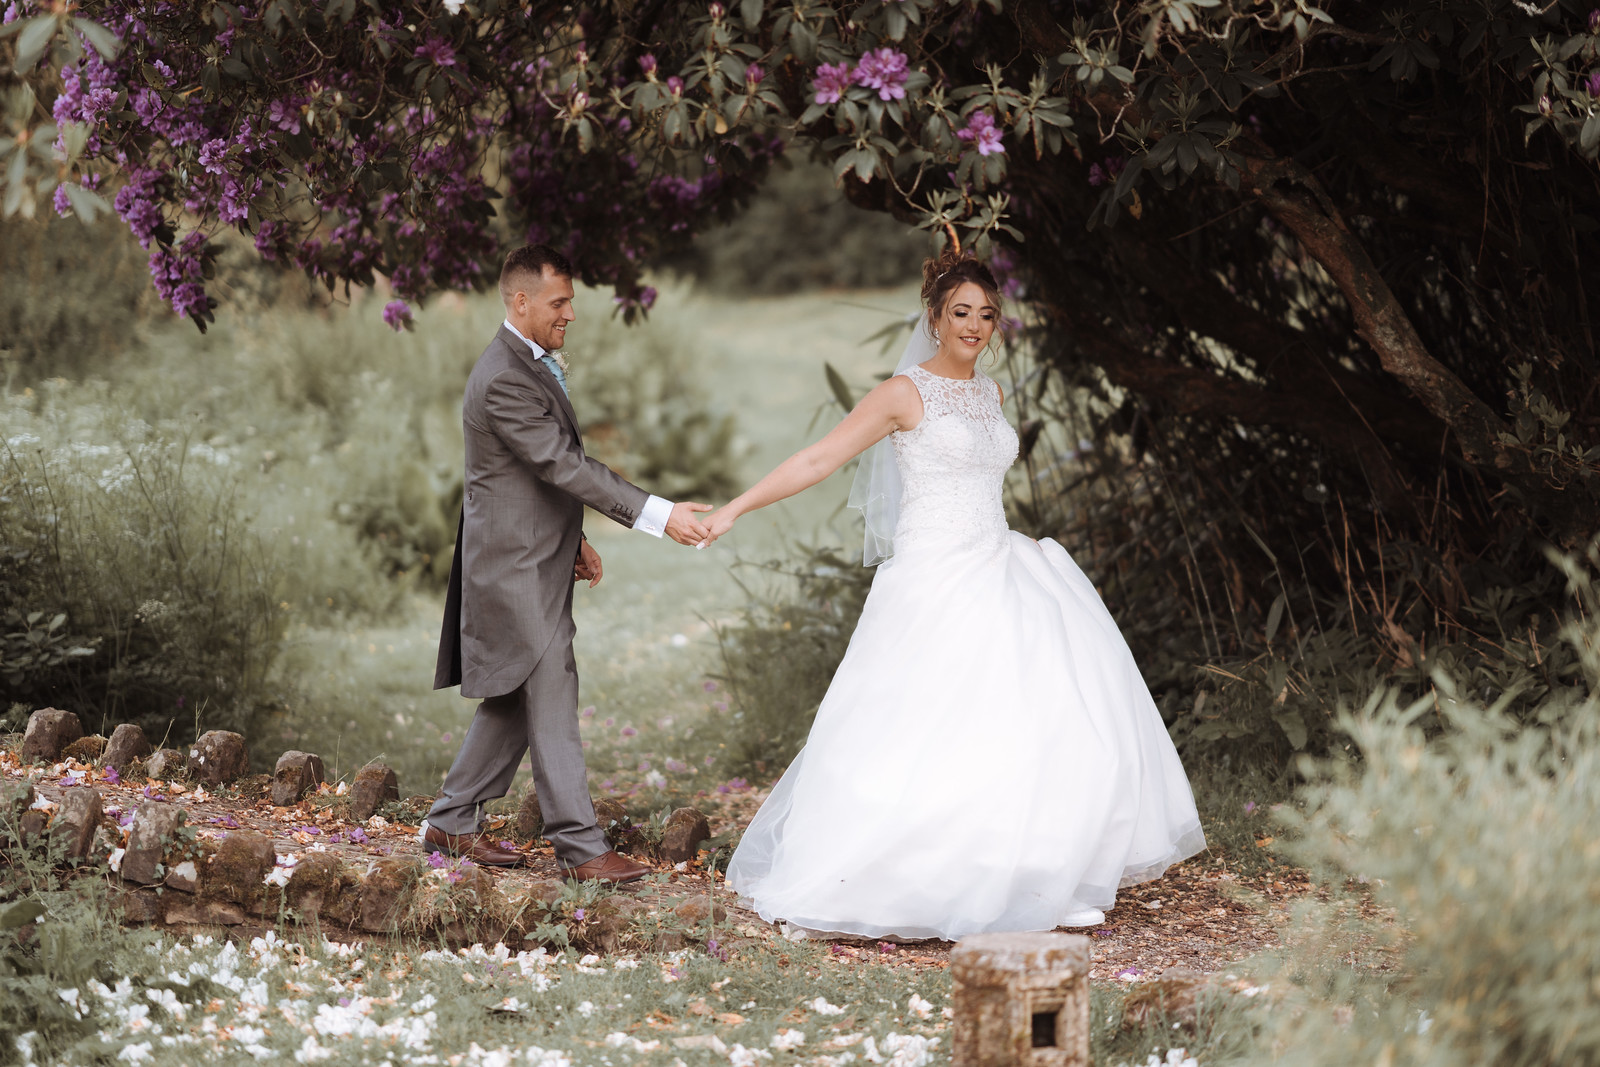 Bride and groom, hand in hand, walk through the greenery of the outside venue